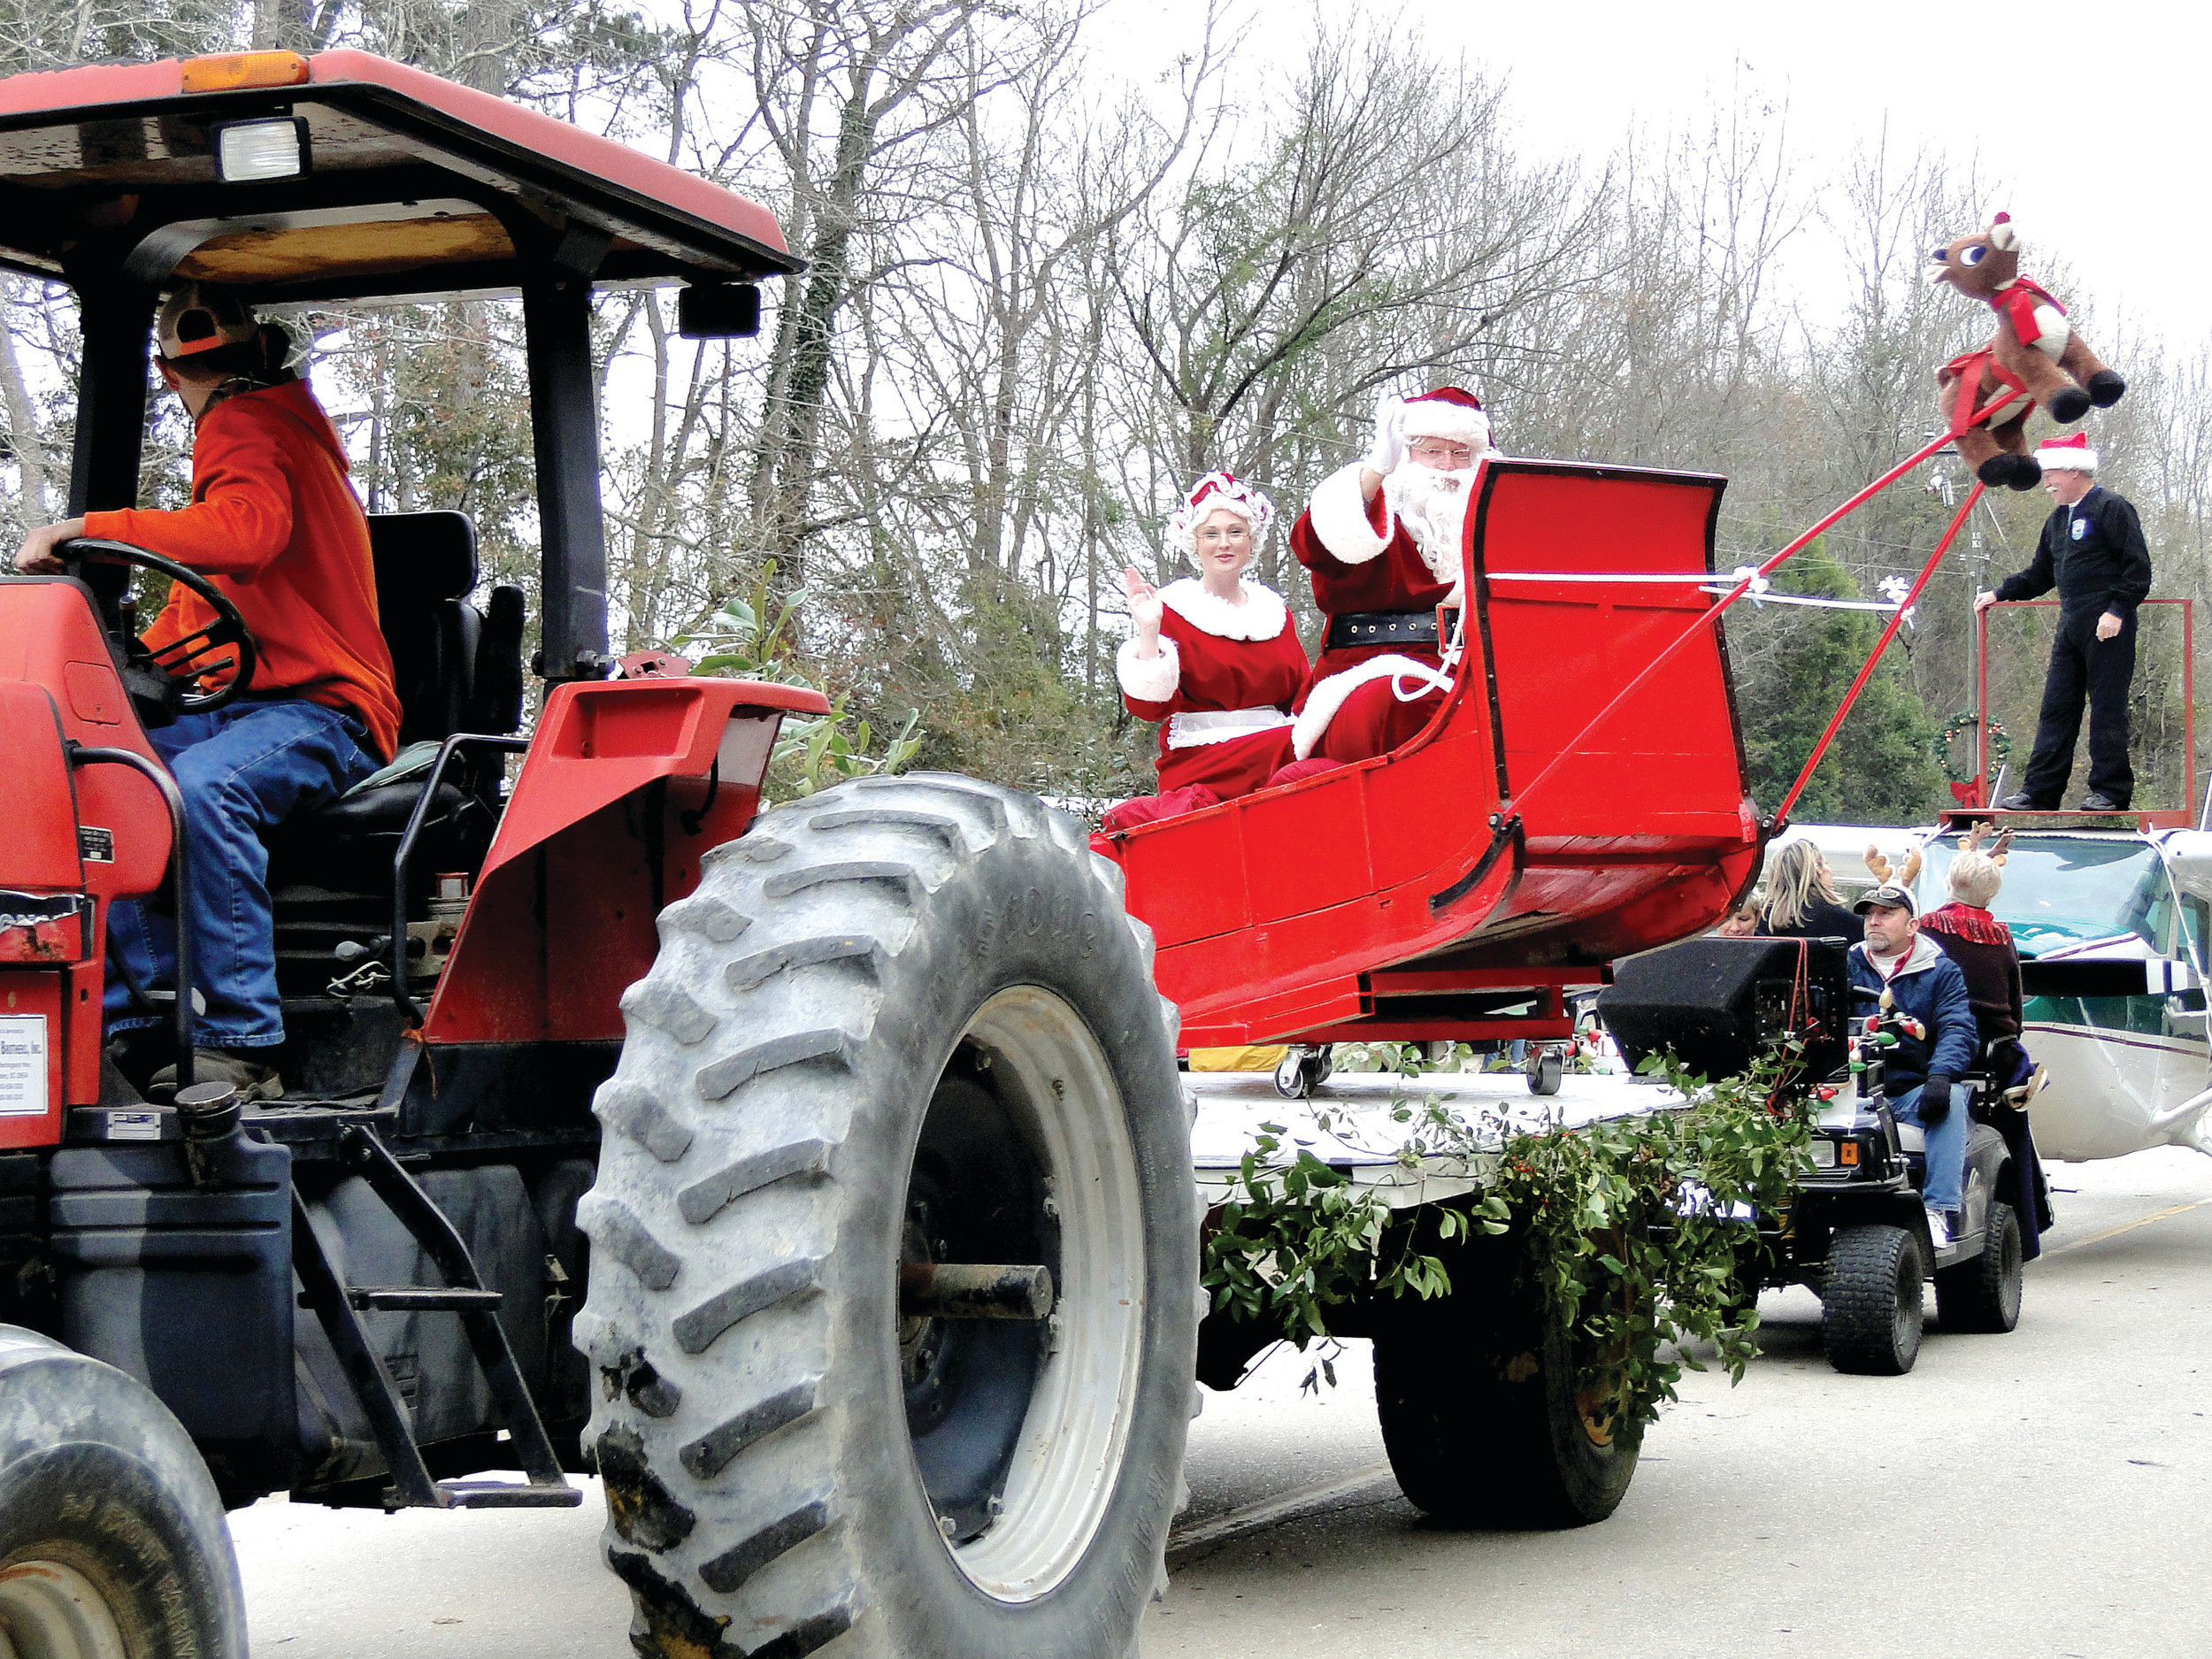 You never know how Santa Claus will arrive at the Boykin Christmas Parade -- it could be on an elephant, in a cast-iron tub or on a sleigh pulled by one tiny reindeer.